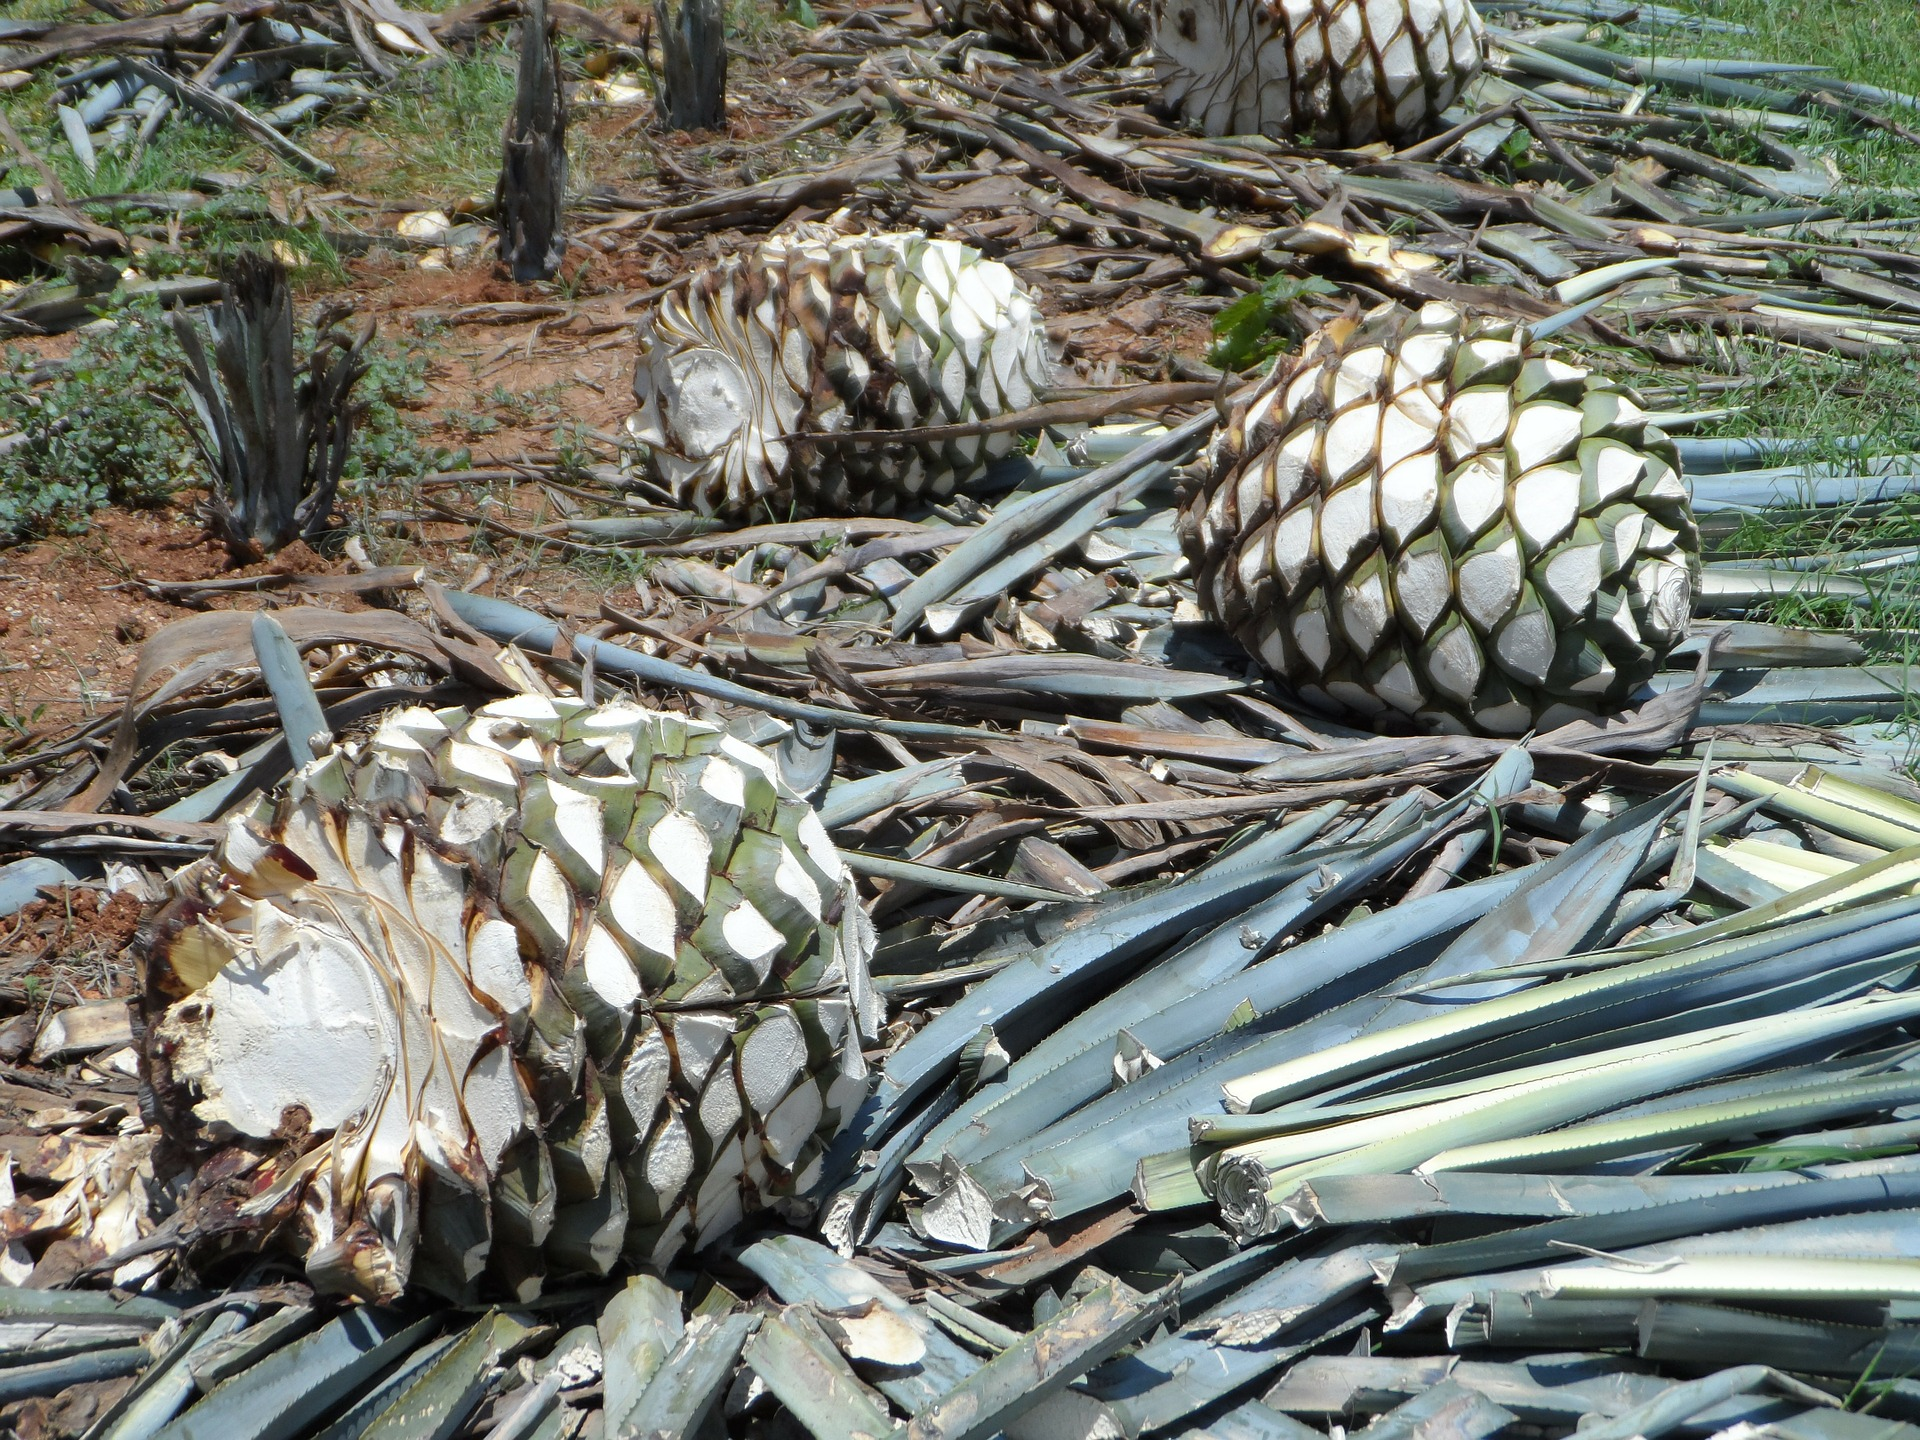 Additives in Many Tequilas Negate Natural Agave Flavor